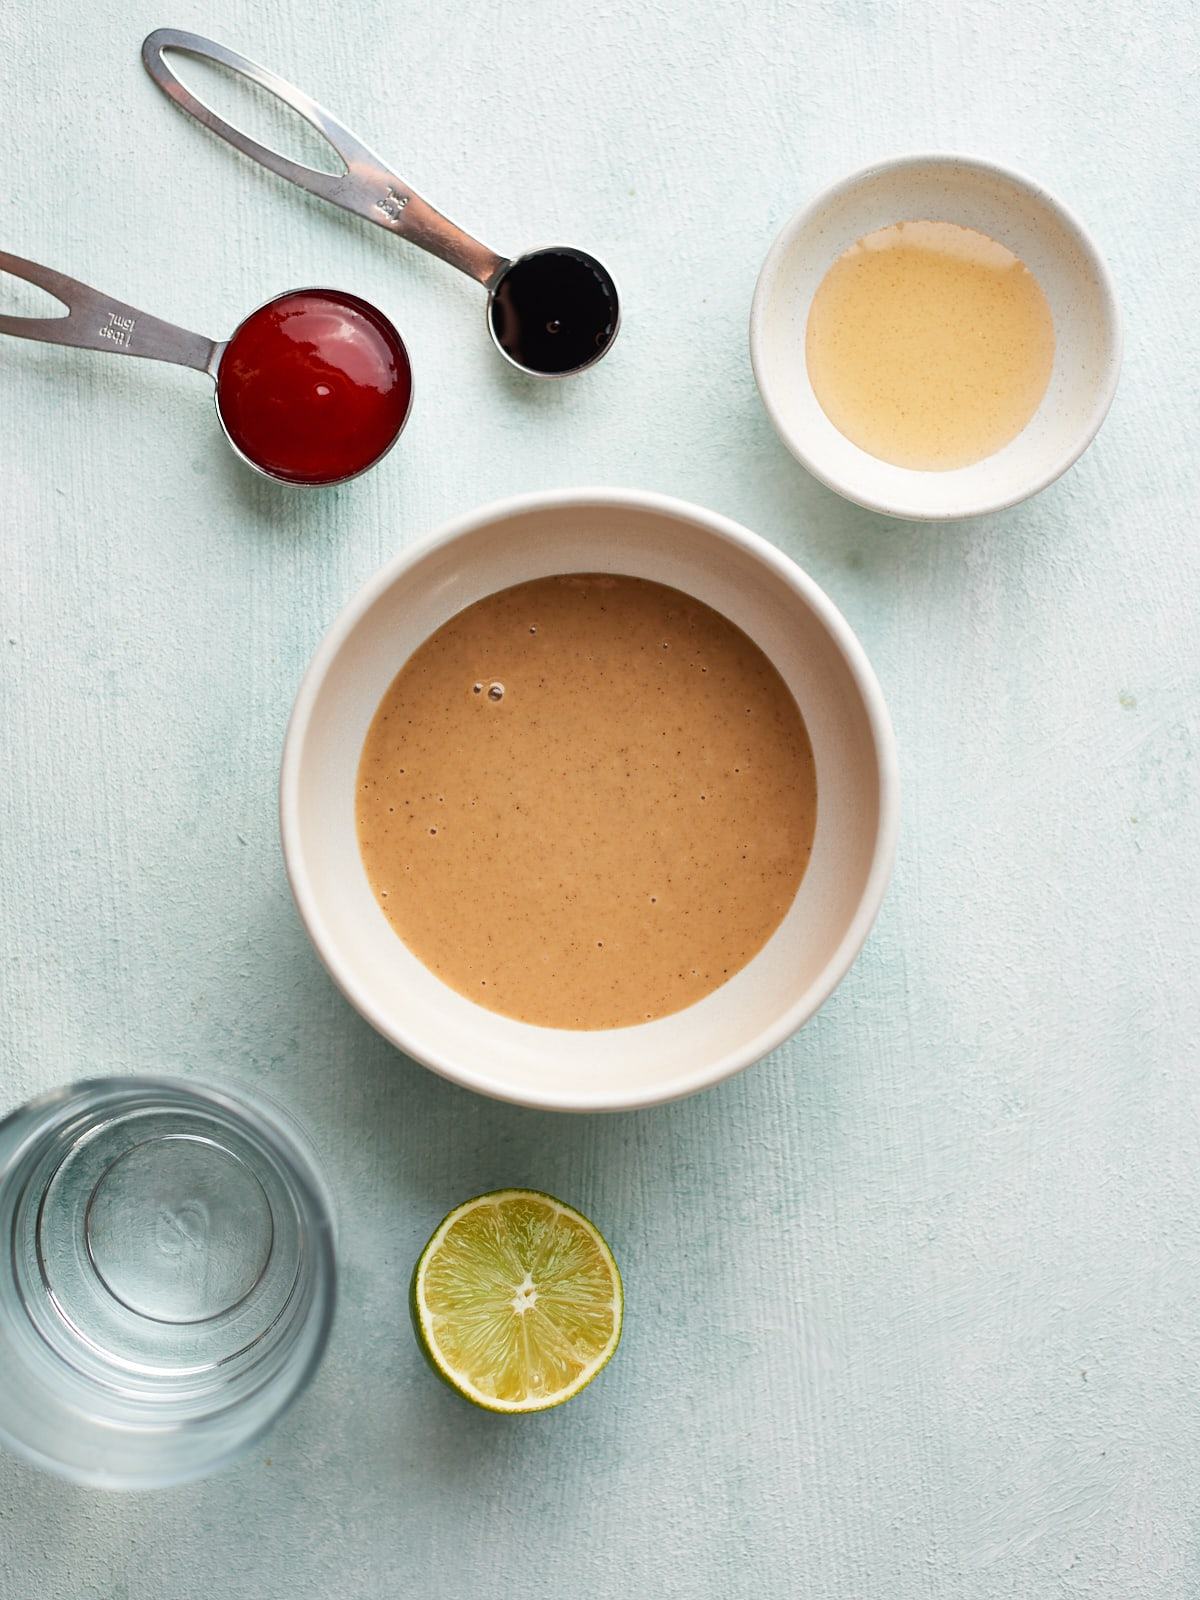 Ingredients for the tahini drizzle